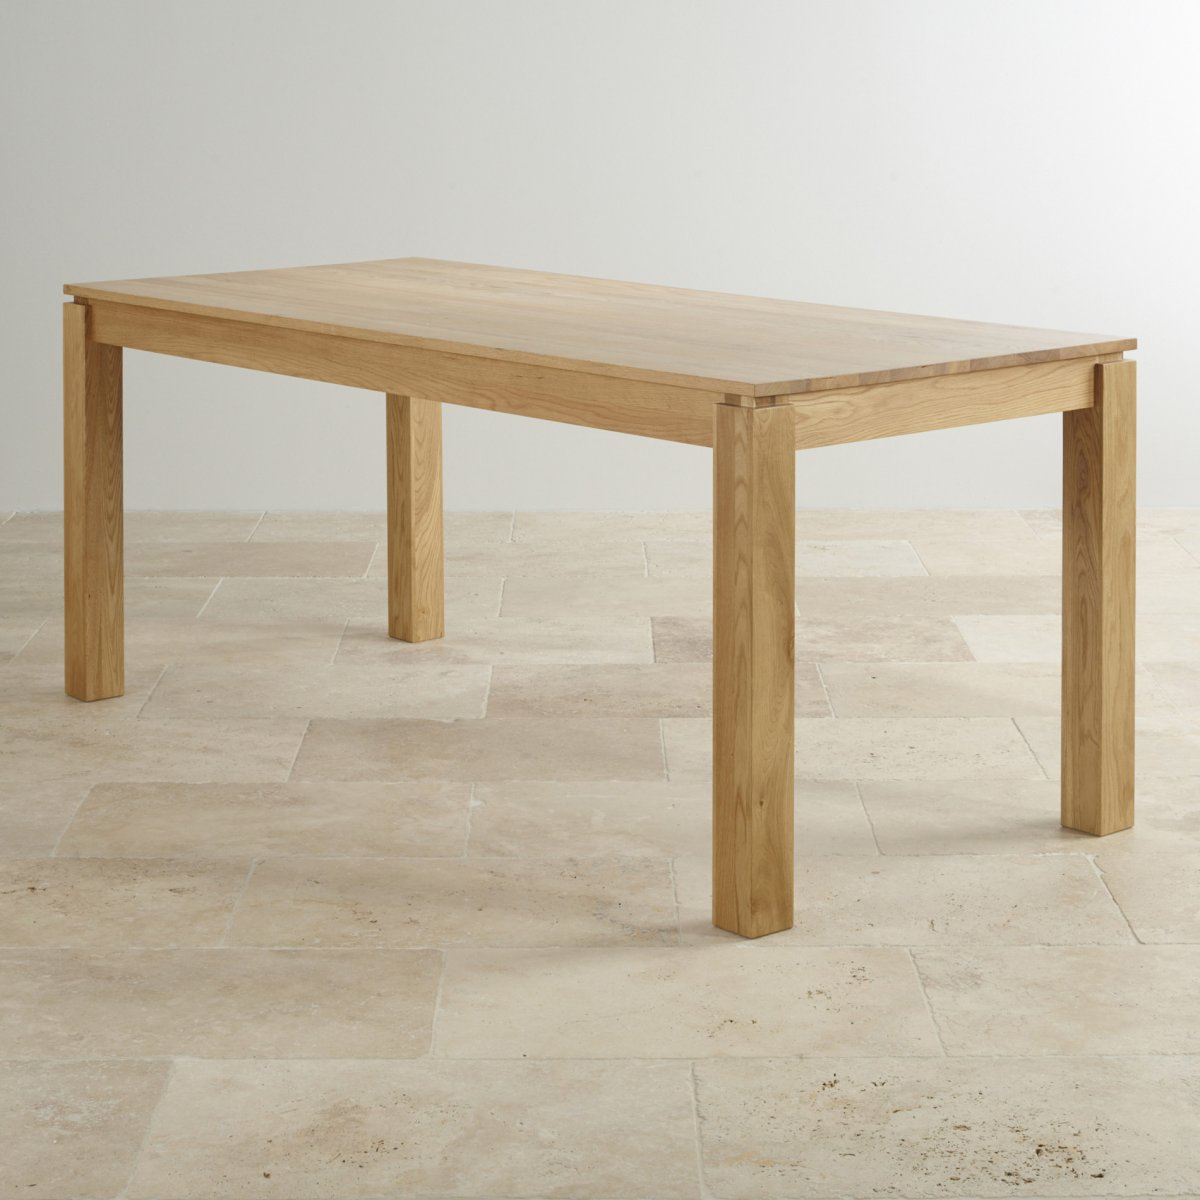 Galway 6ft x 2ft 8 natural solid oak table dining furniture for Solid oak dining table